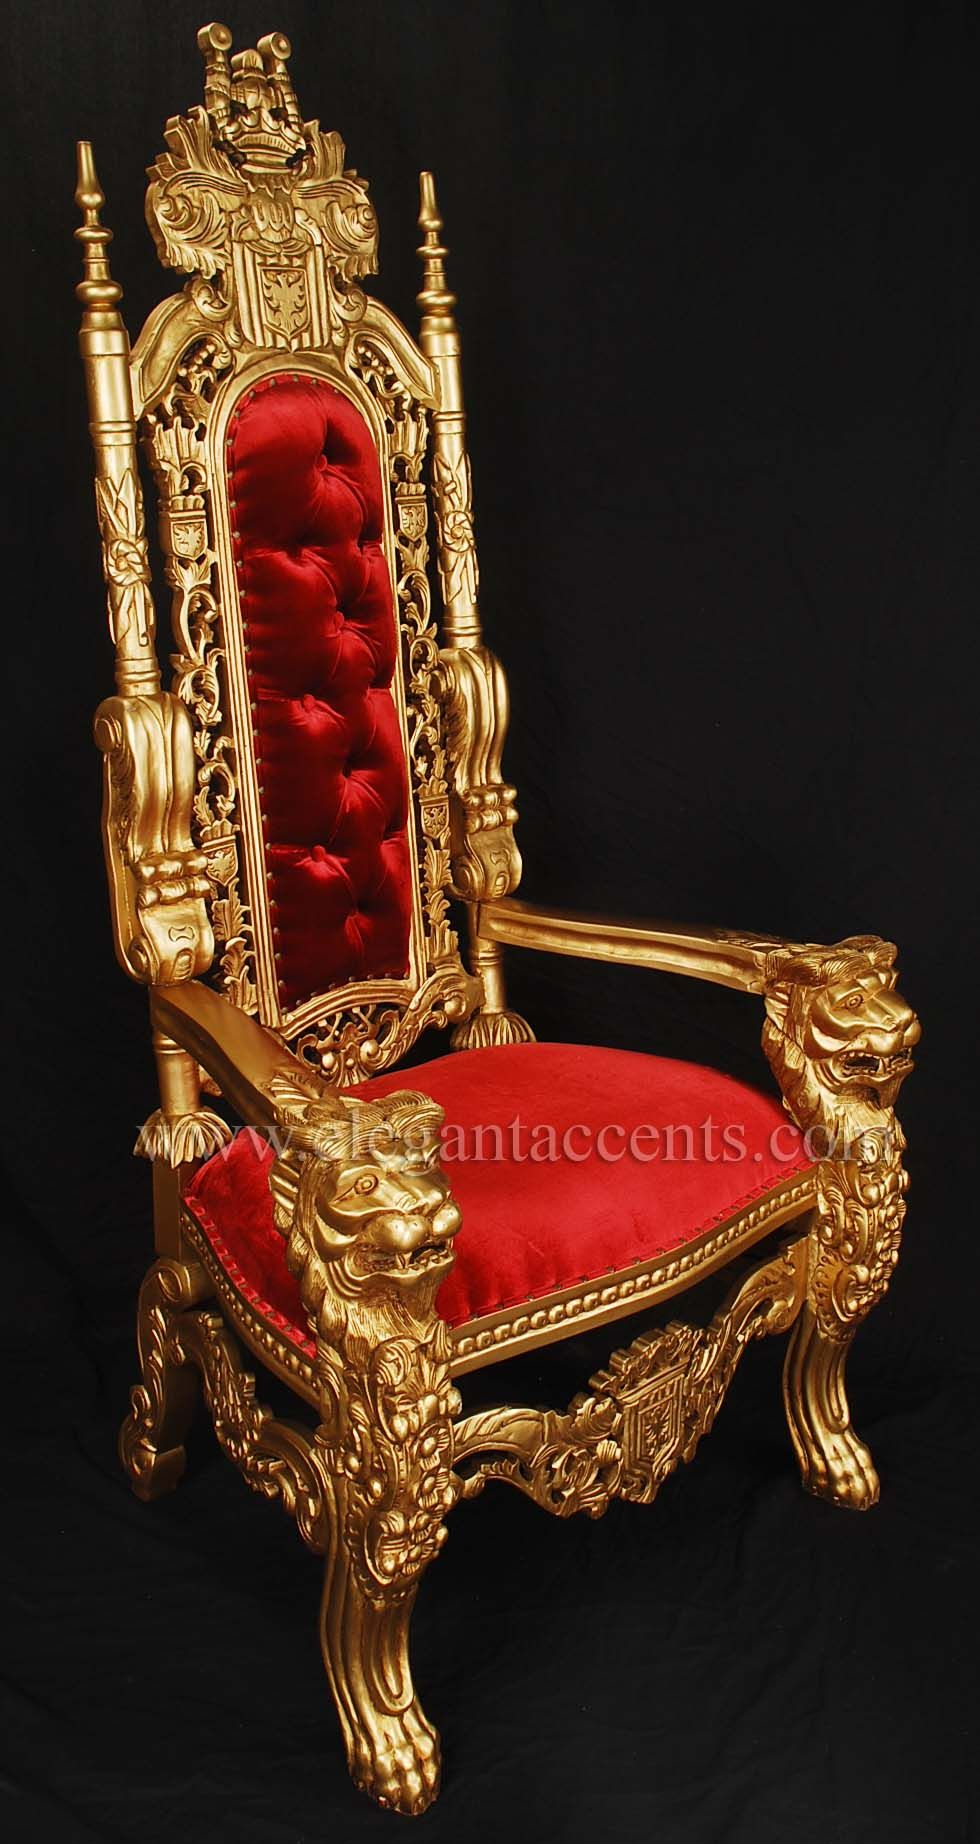 King chair with king - King Lion Throne Chair These Throne Chairs Are Hand Carved From Solid Mahogany Finished